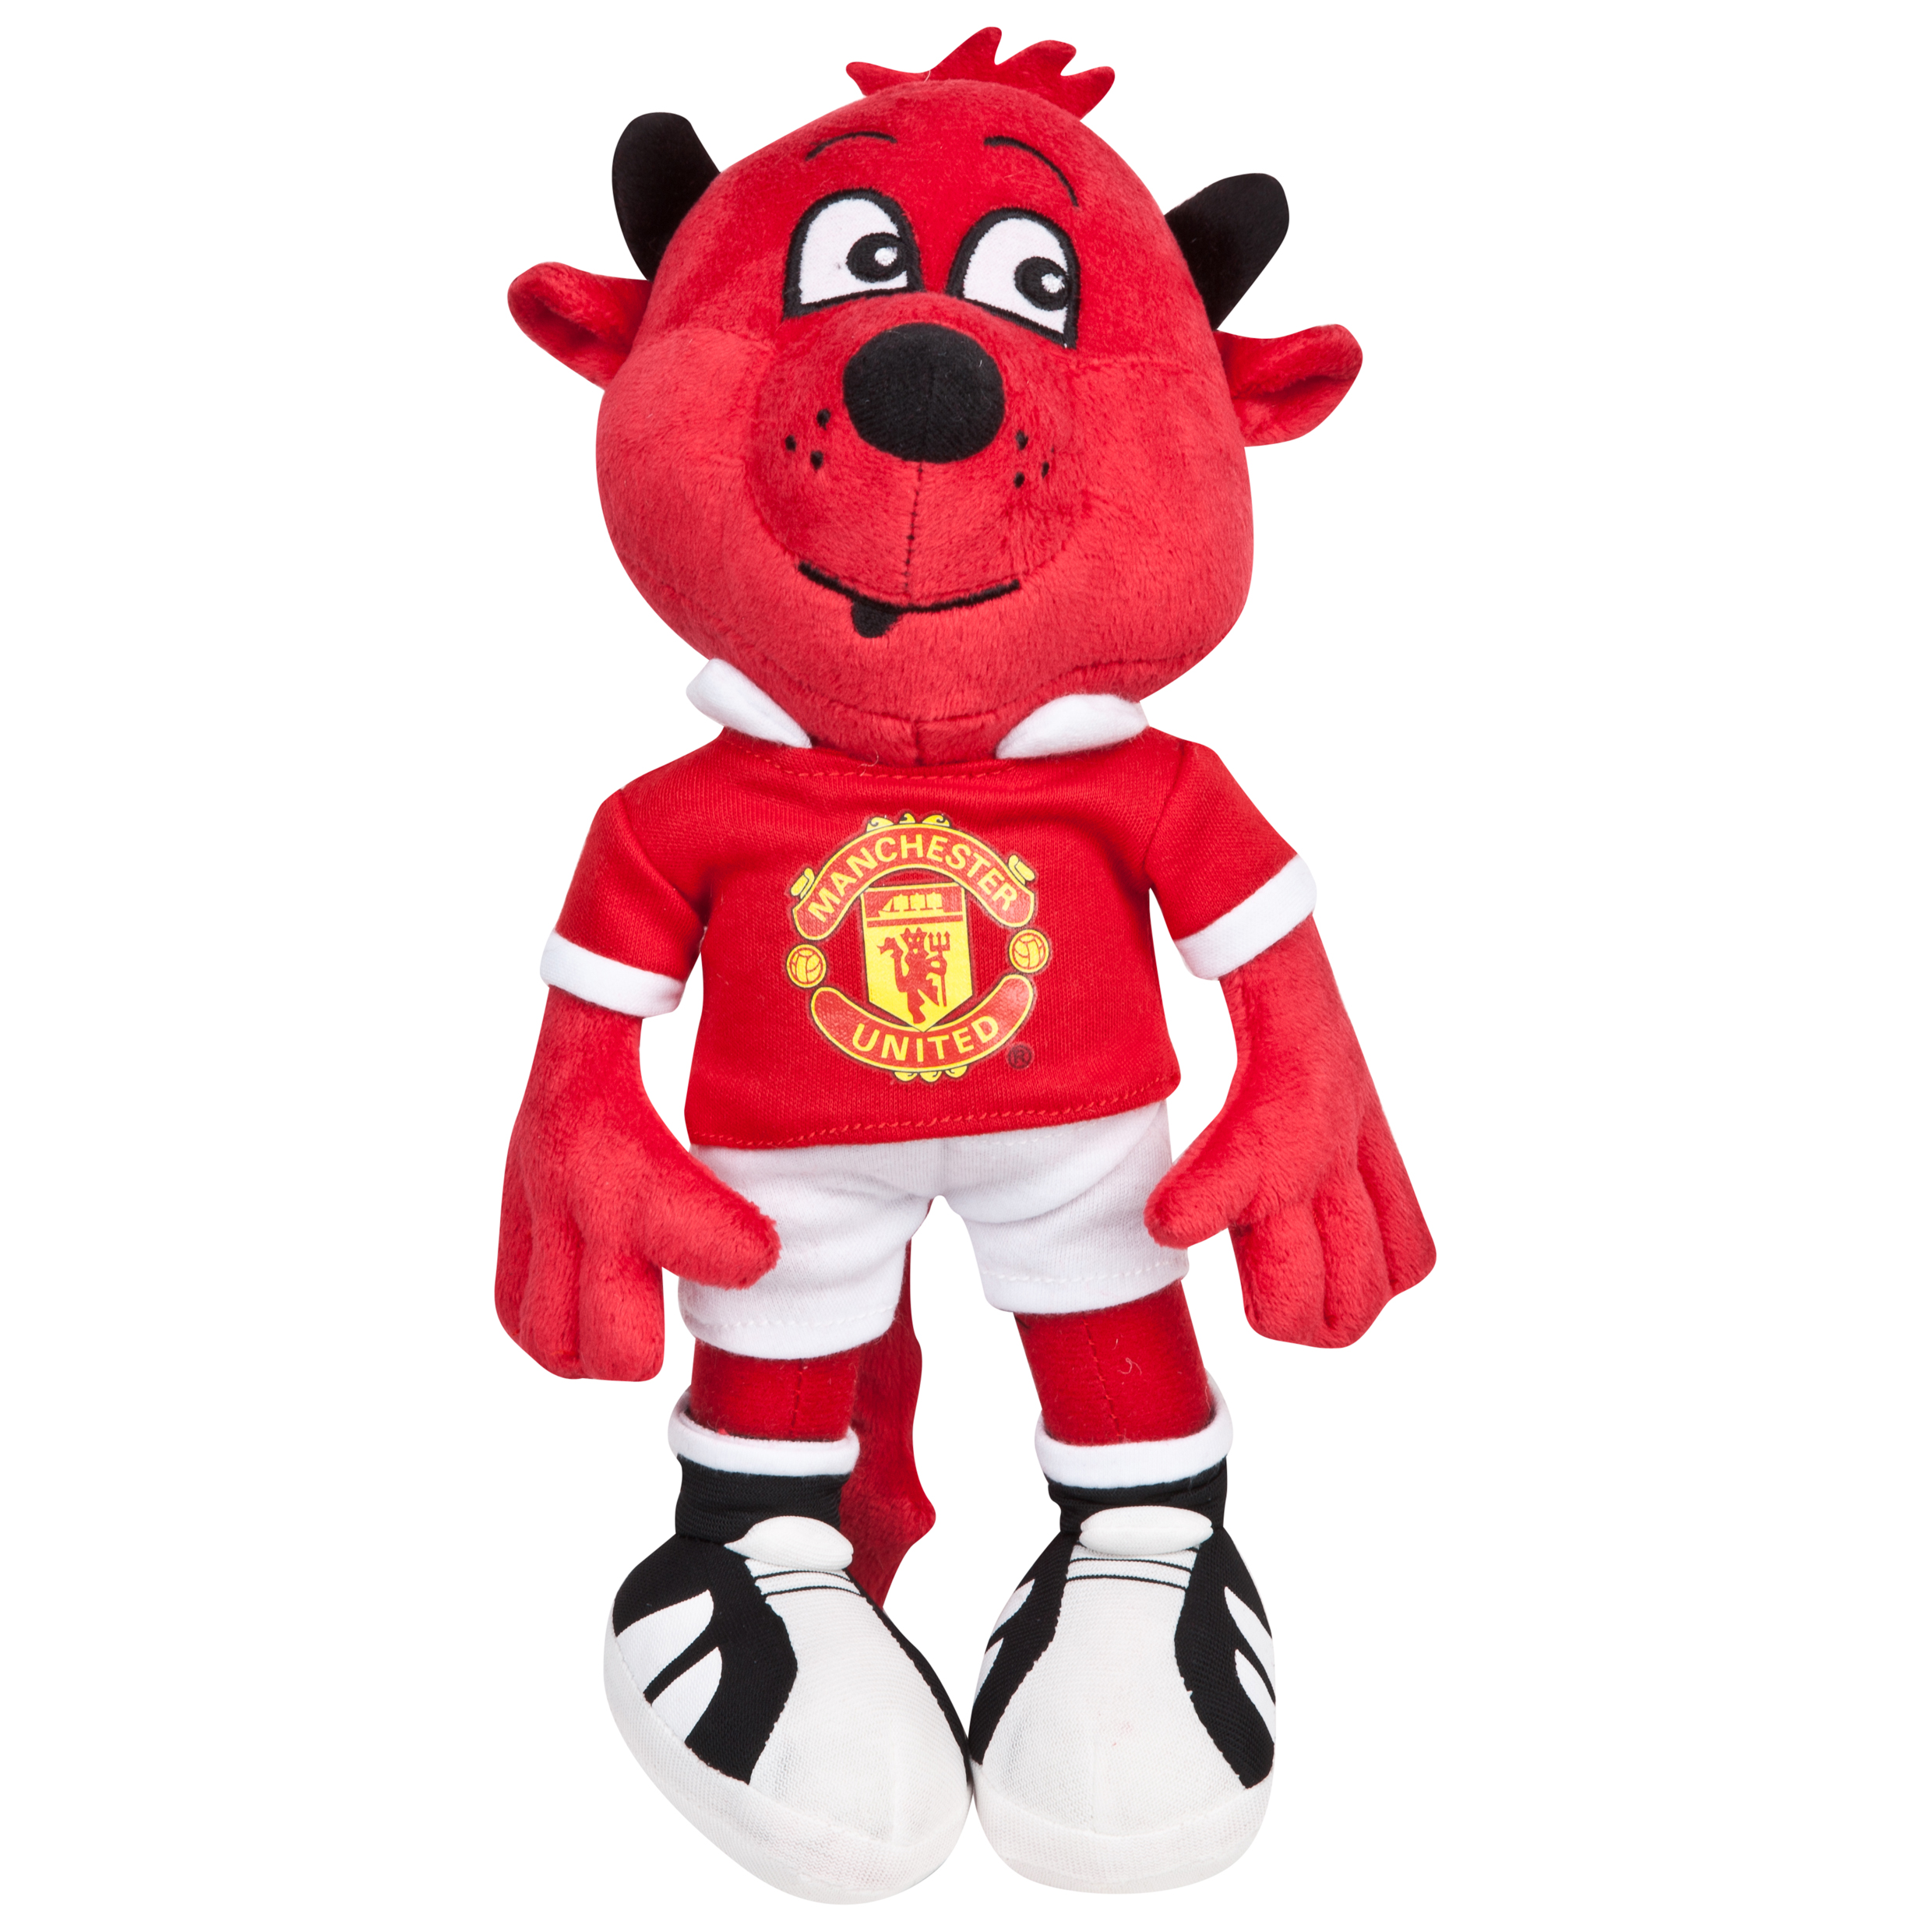 Manchester United Fred The Red Mascot - 30cm